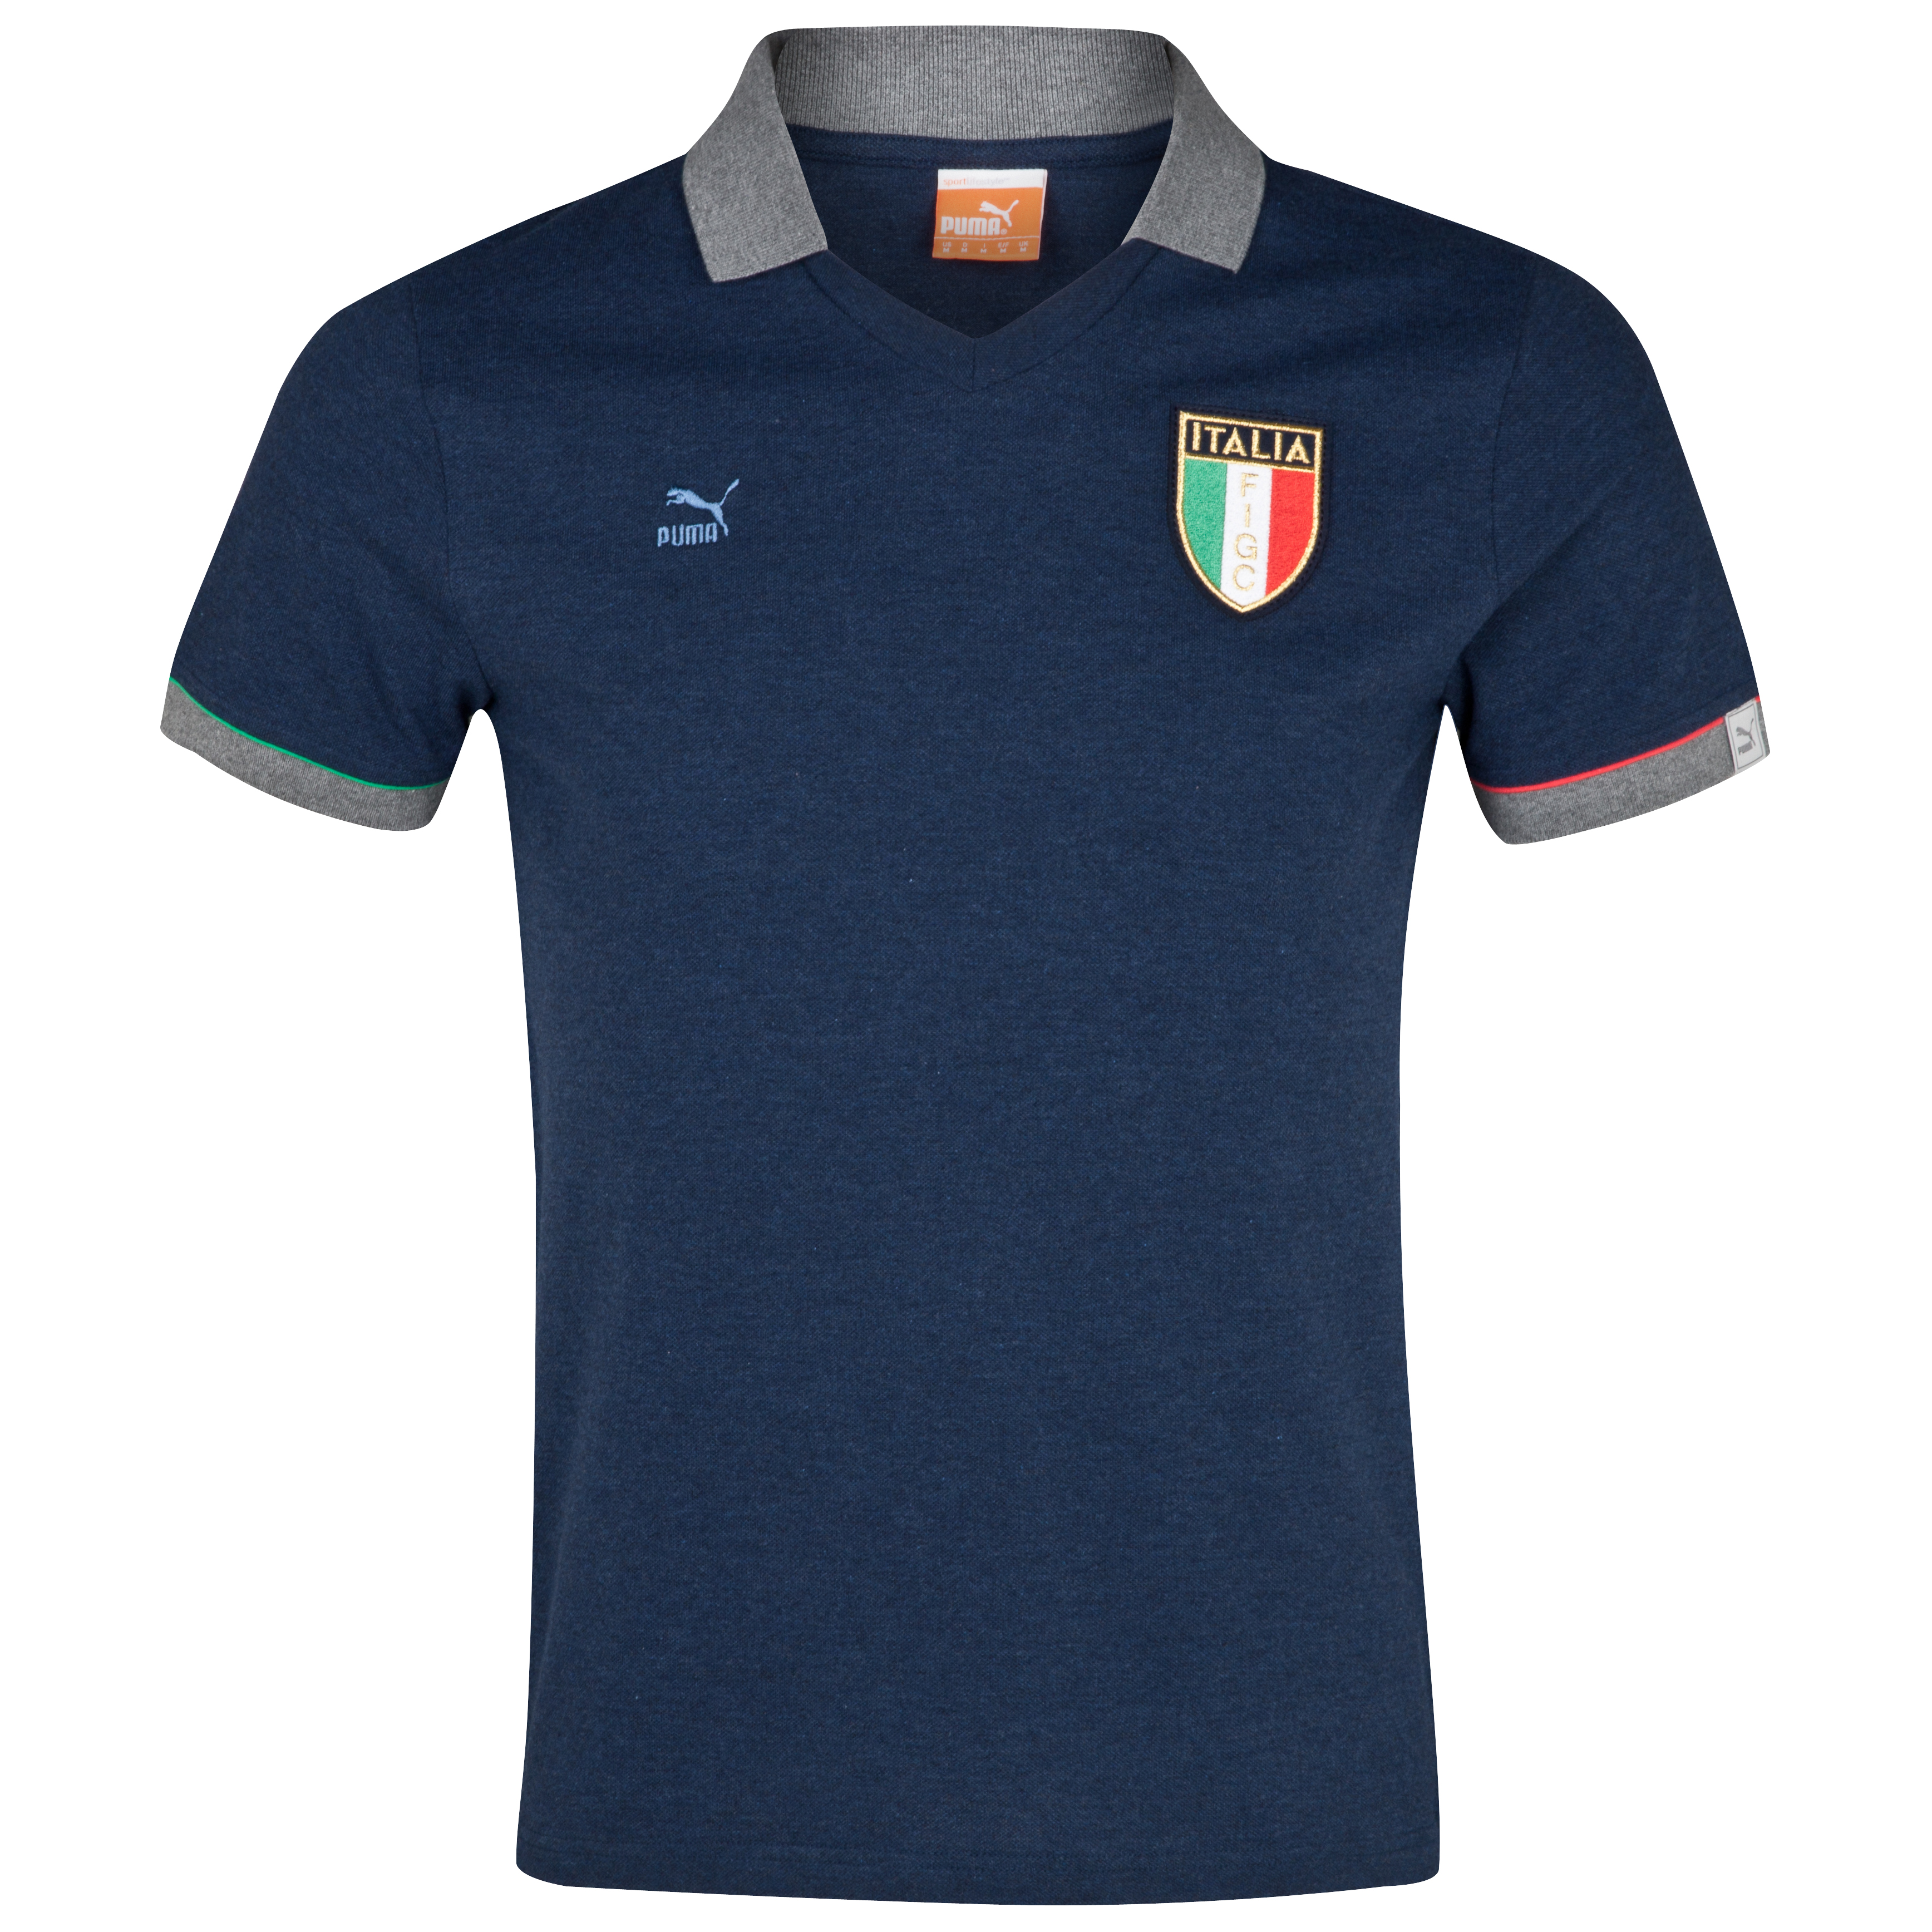 Puma Italy T7 Polo - Dark Denim Heather